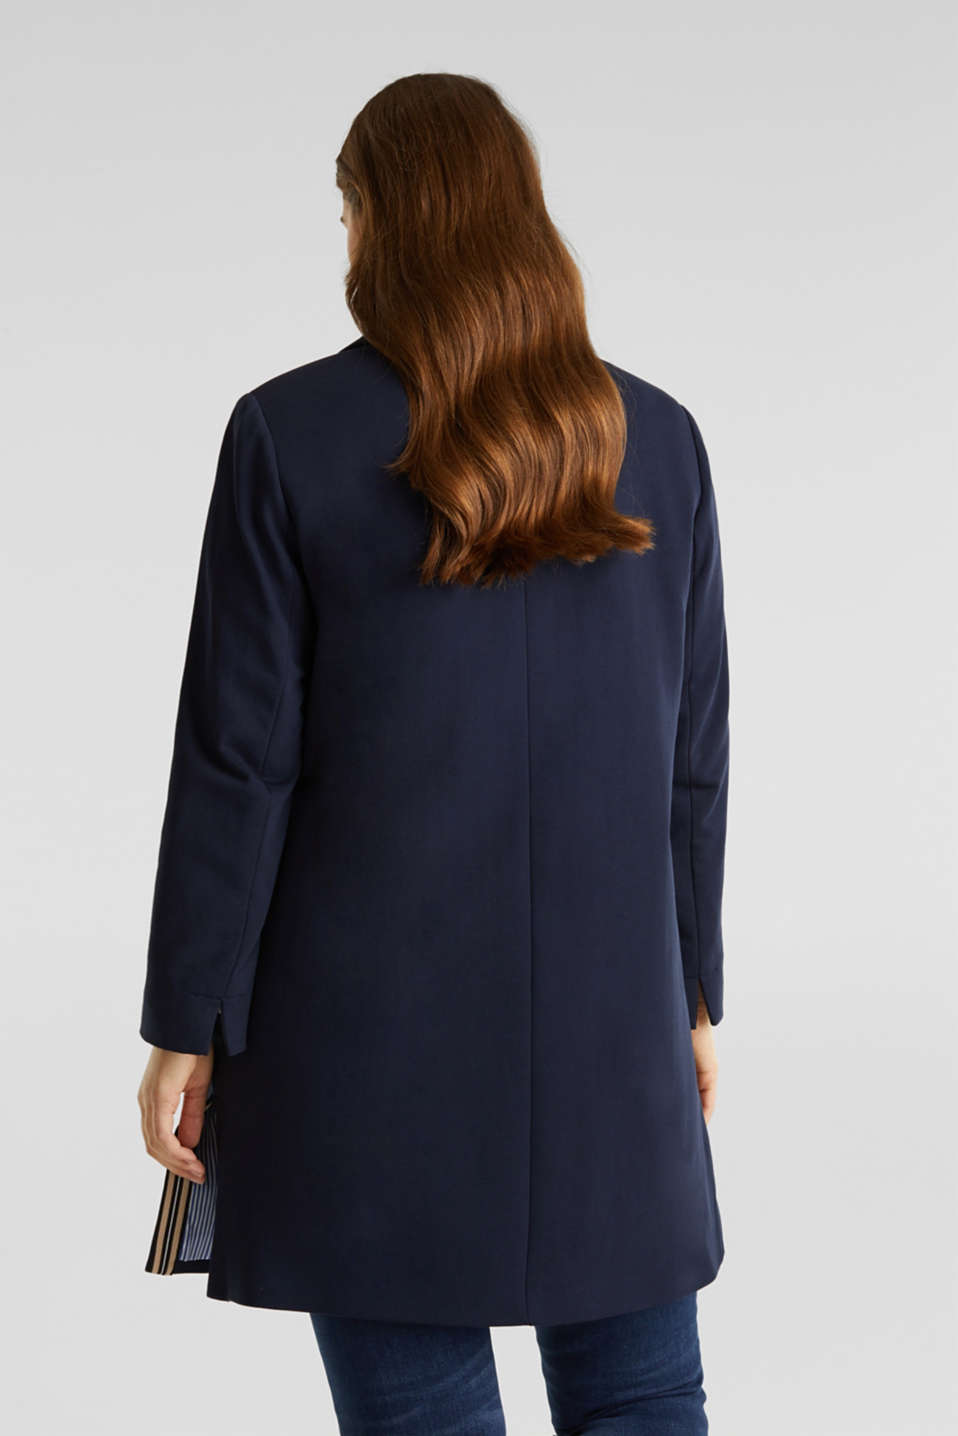 CURVY jersey coat with a striped lining, NAVY, detail image number 3